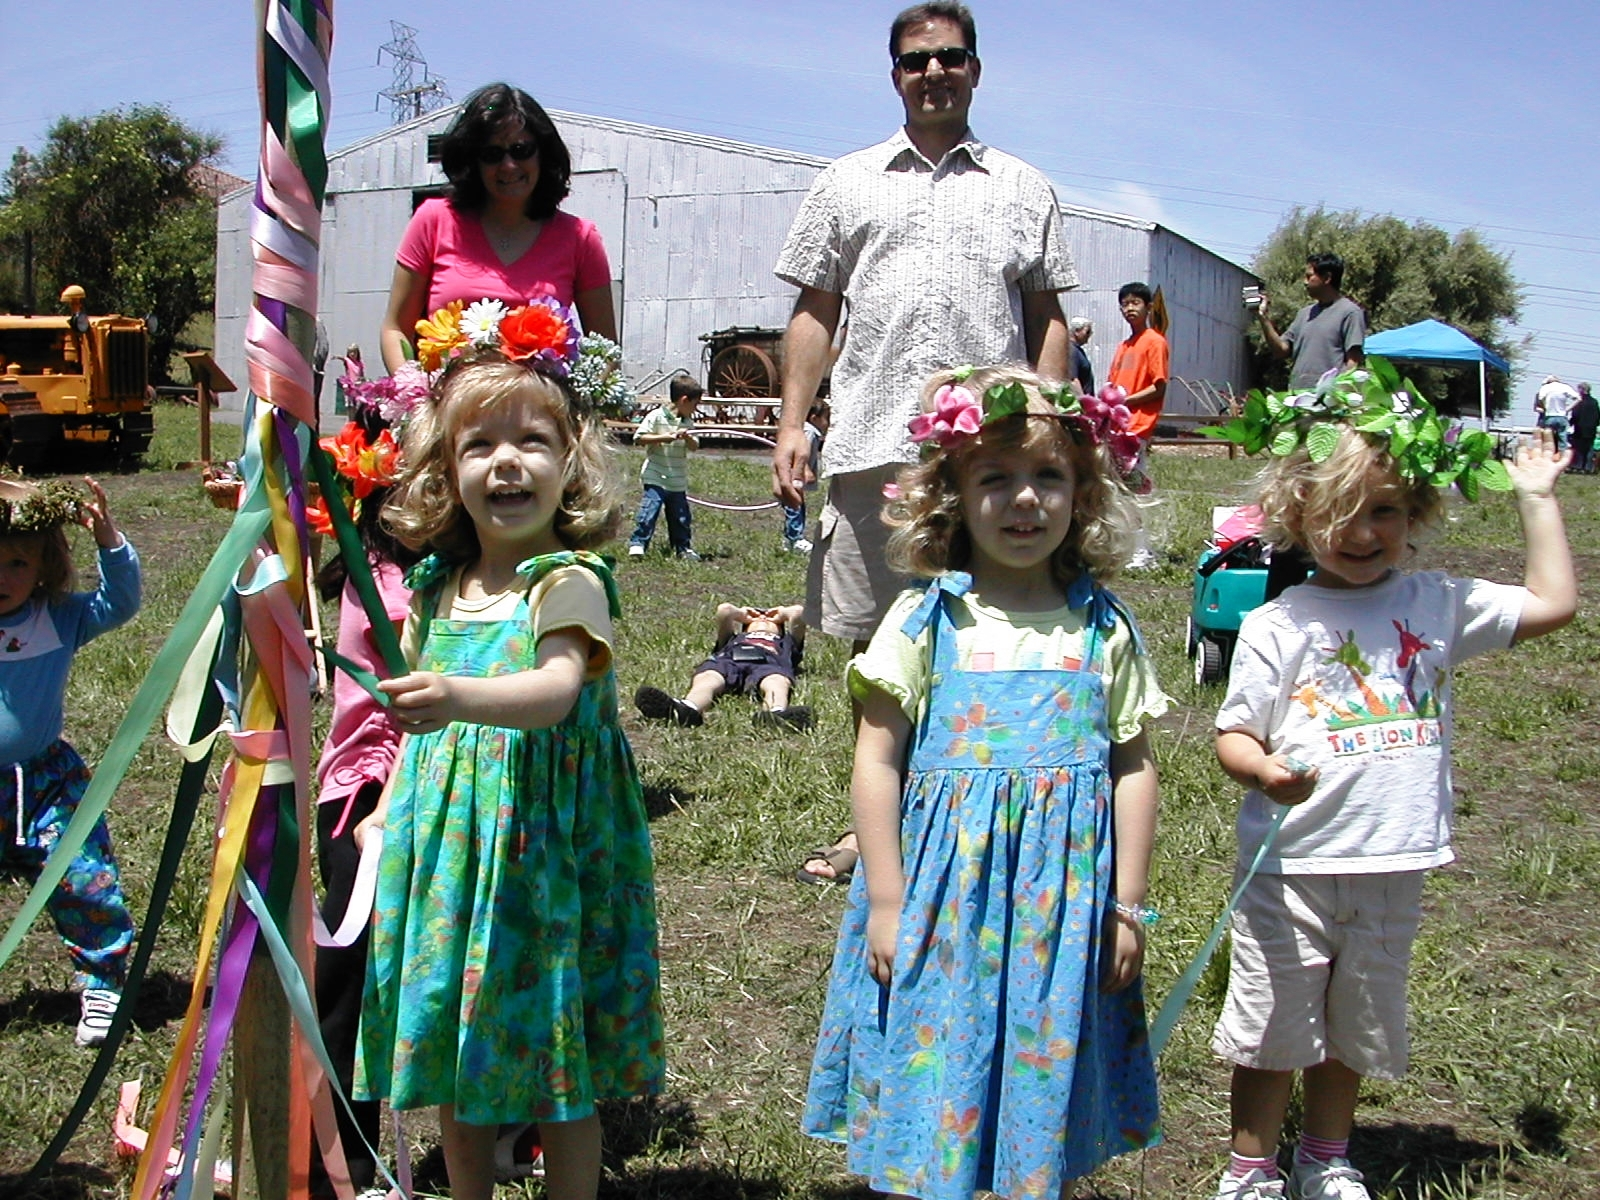 Children enjoy a May Pole at Forest Home Farms, a site which celebrates the agricultural history of the San Ramon area.